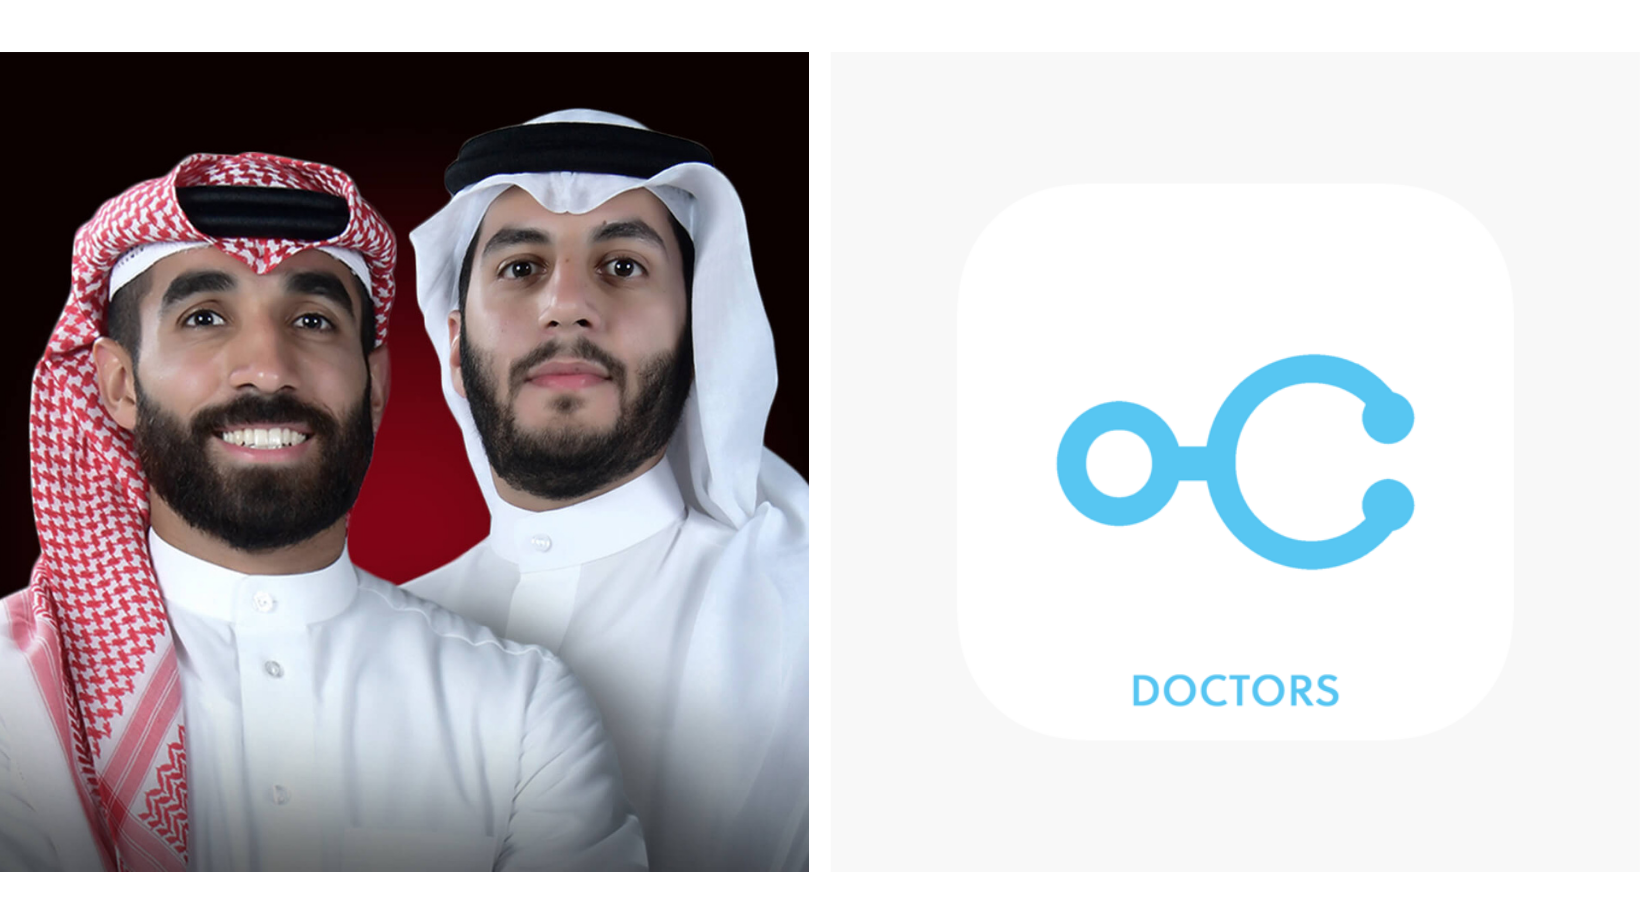 Doctori App founders Forbes 30 under 30